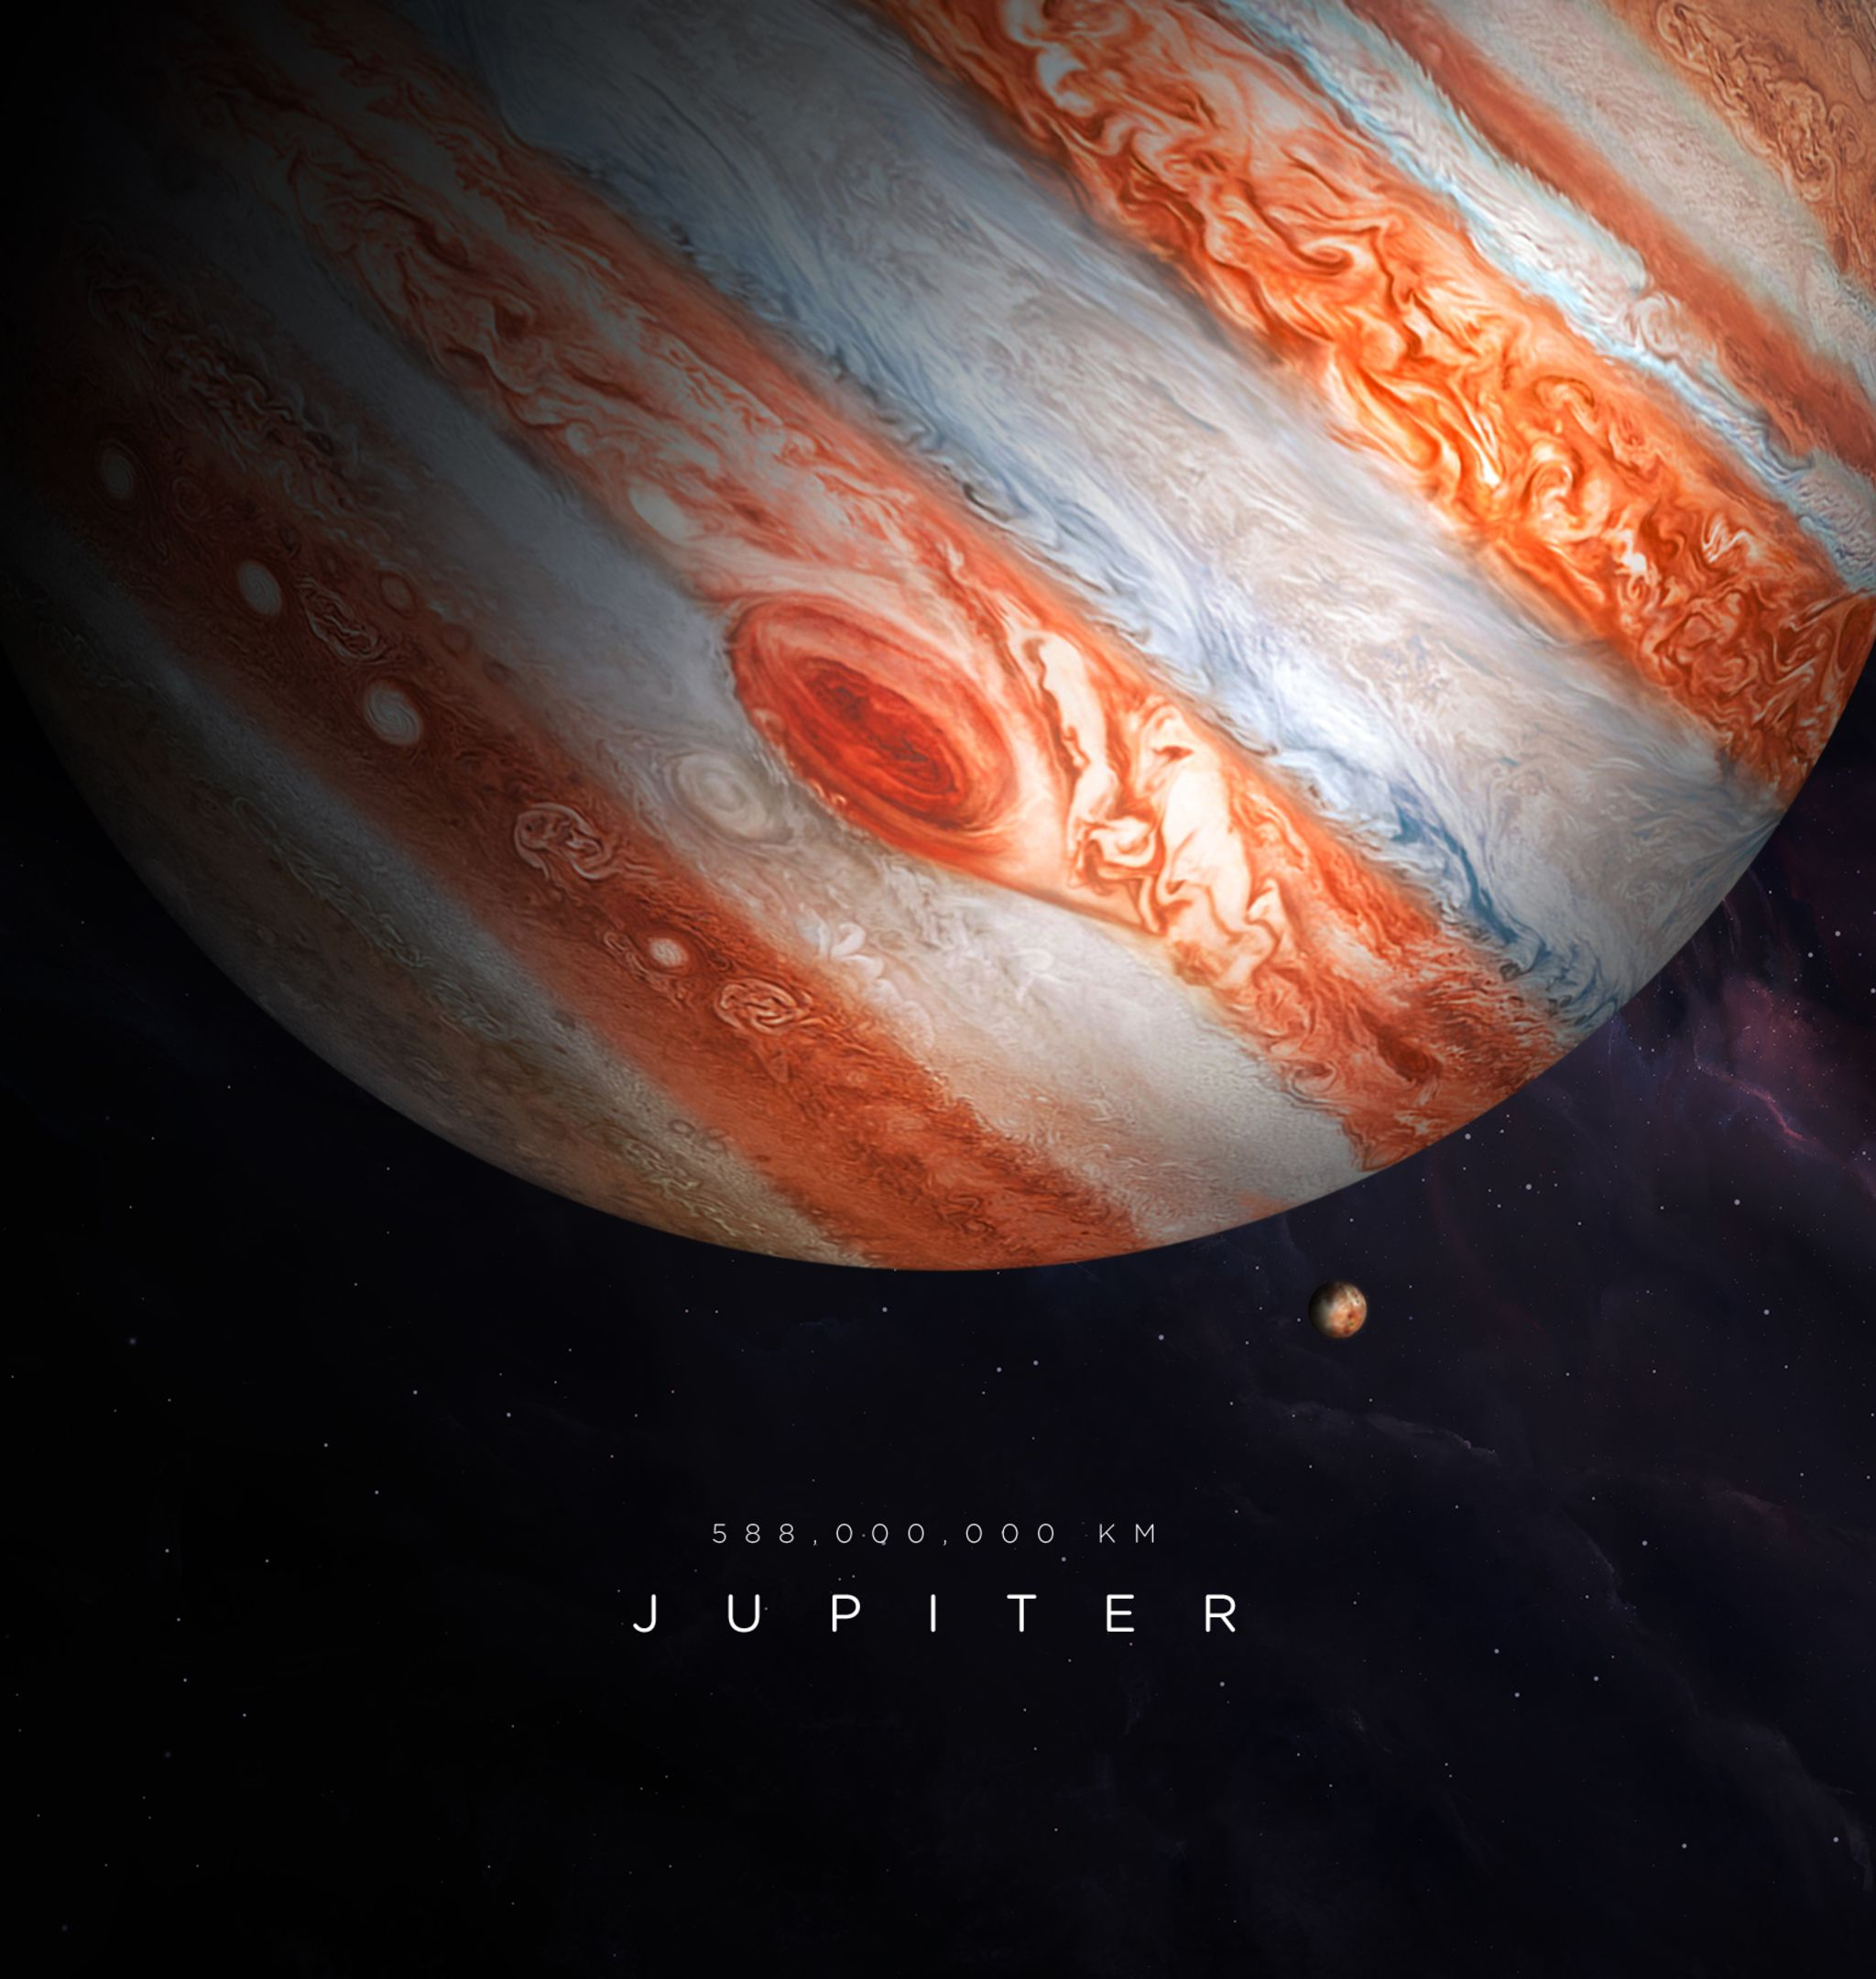 Wallpprs Jupiter Illustration 2048x2732 4k HD Wallpaper 2048x2160